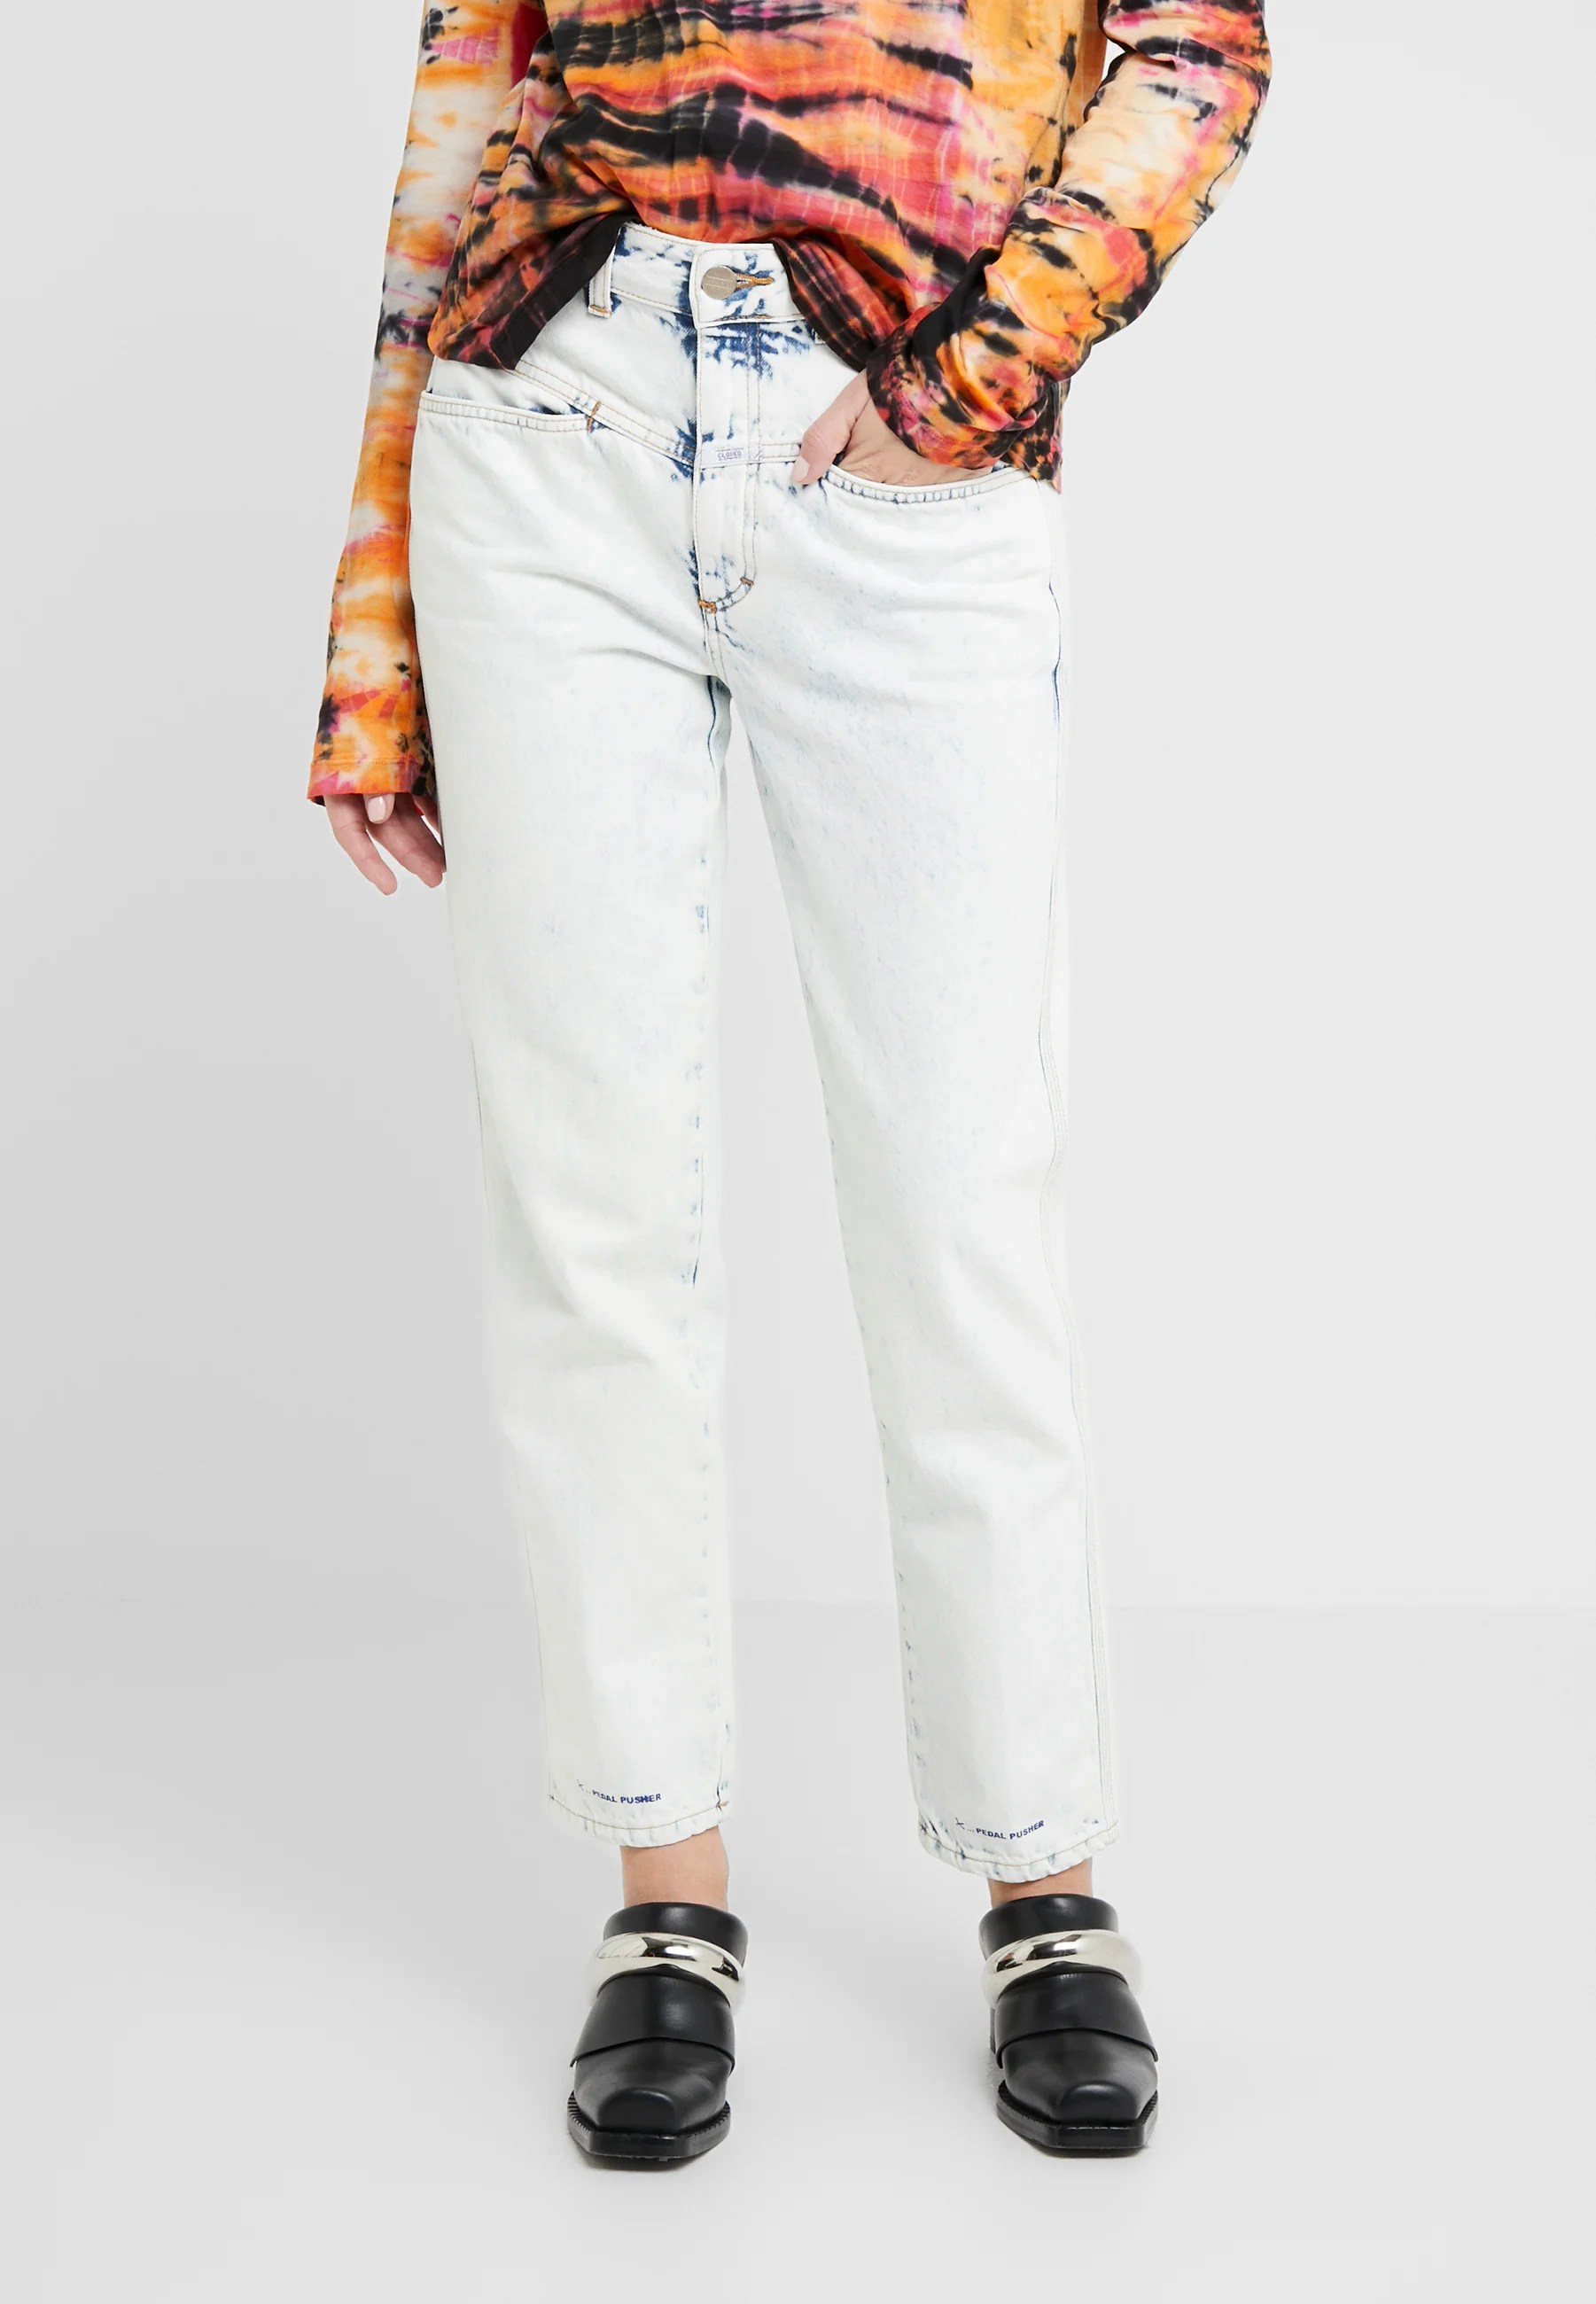 Closed Pedal Pusher High Waist Cropped Length Jeans Relaxed Fit Extrem Light Hellblau Zalando At